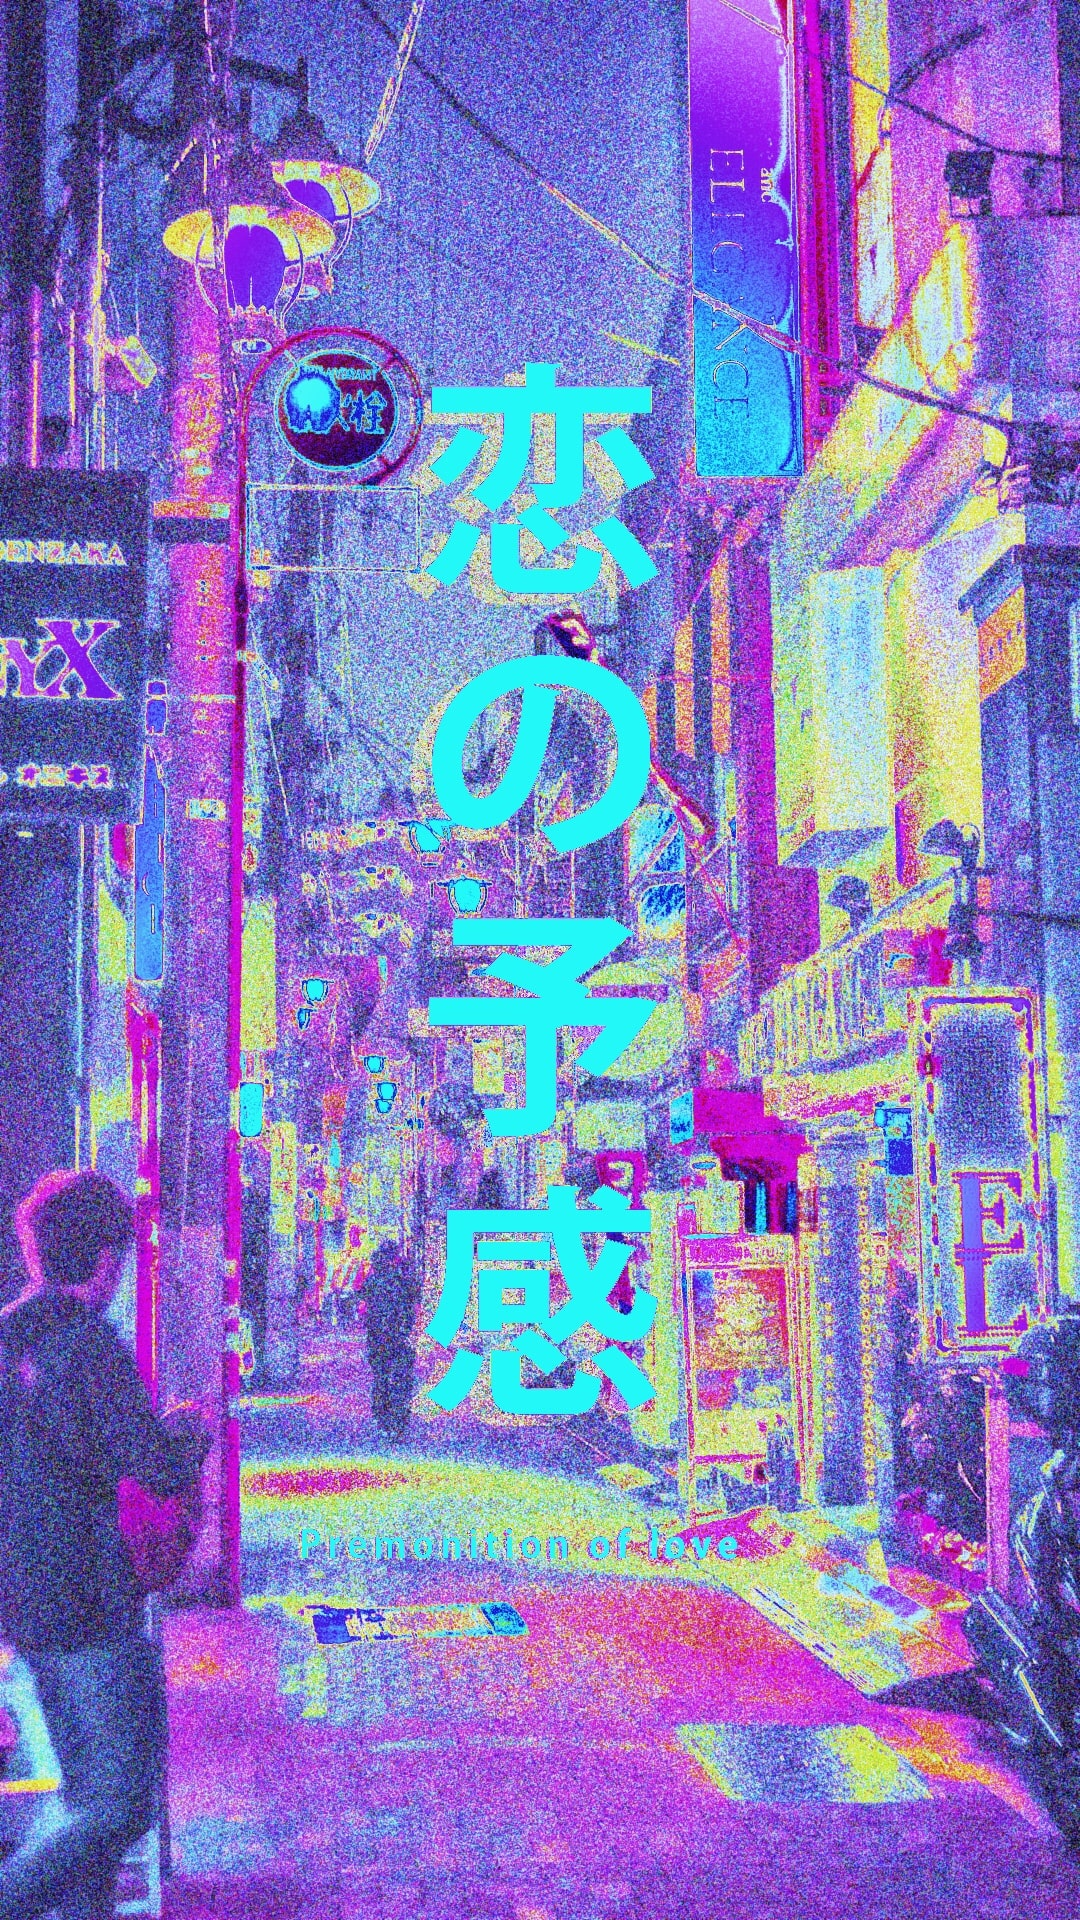 Vaporwave Street Wallpaper